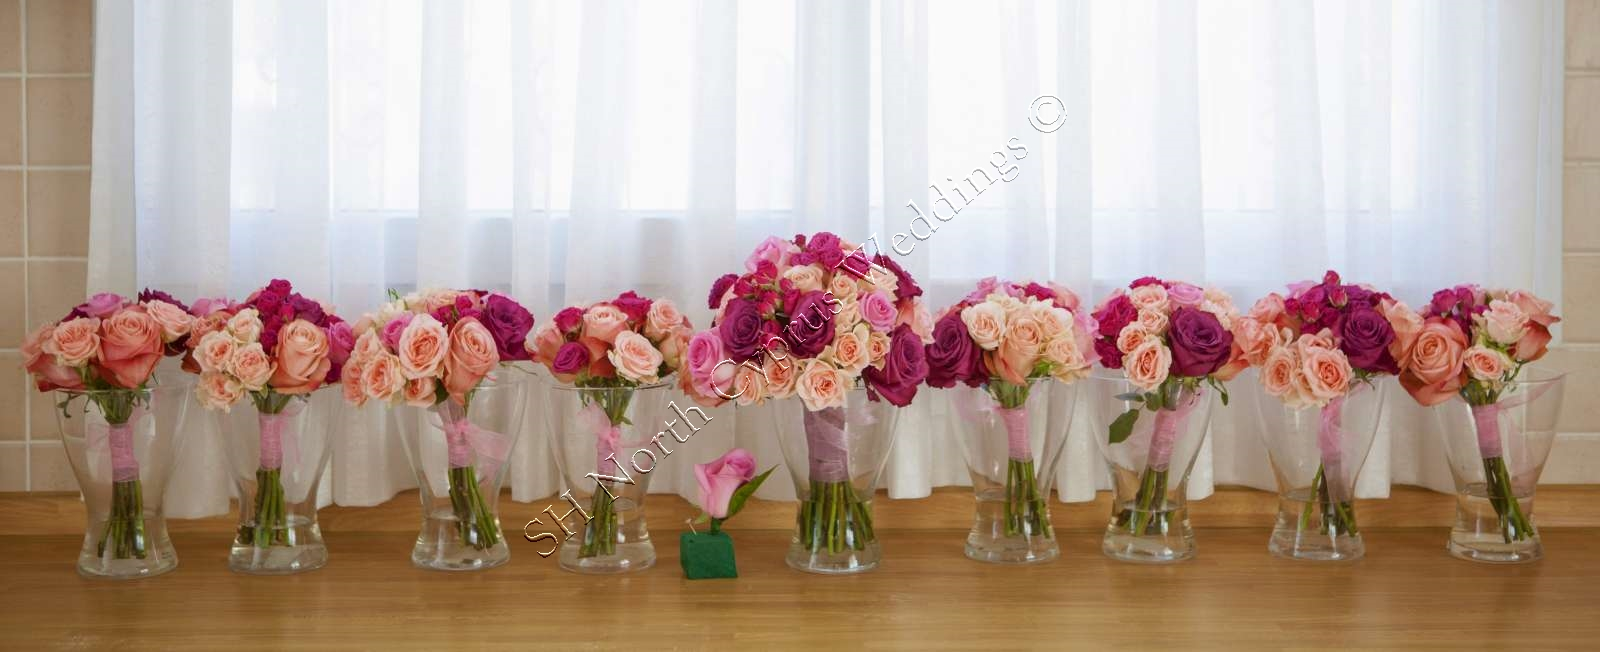 North Cyprus wedding flowers (121)